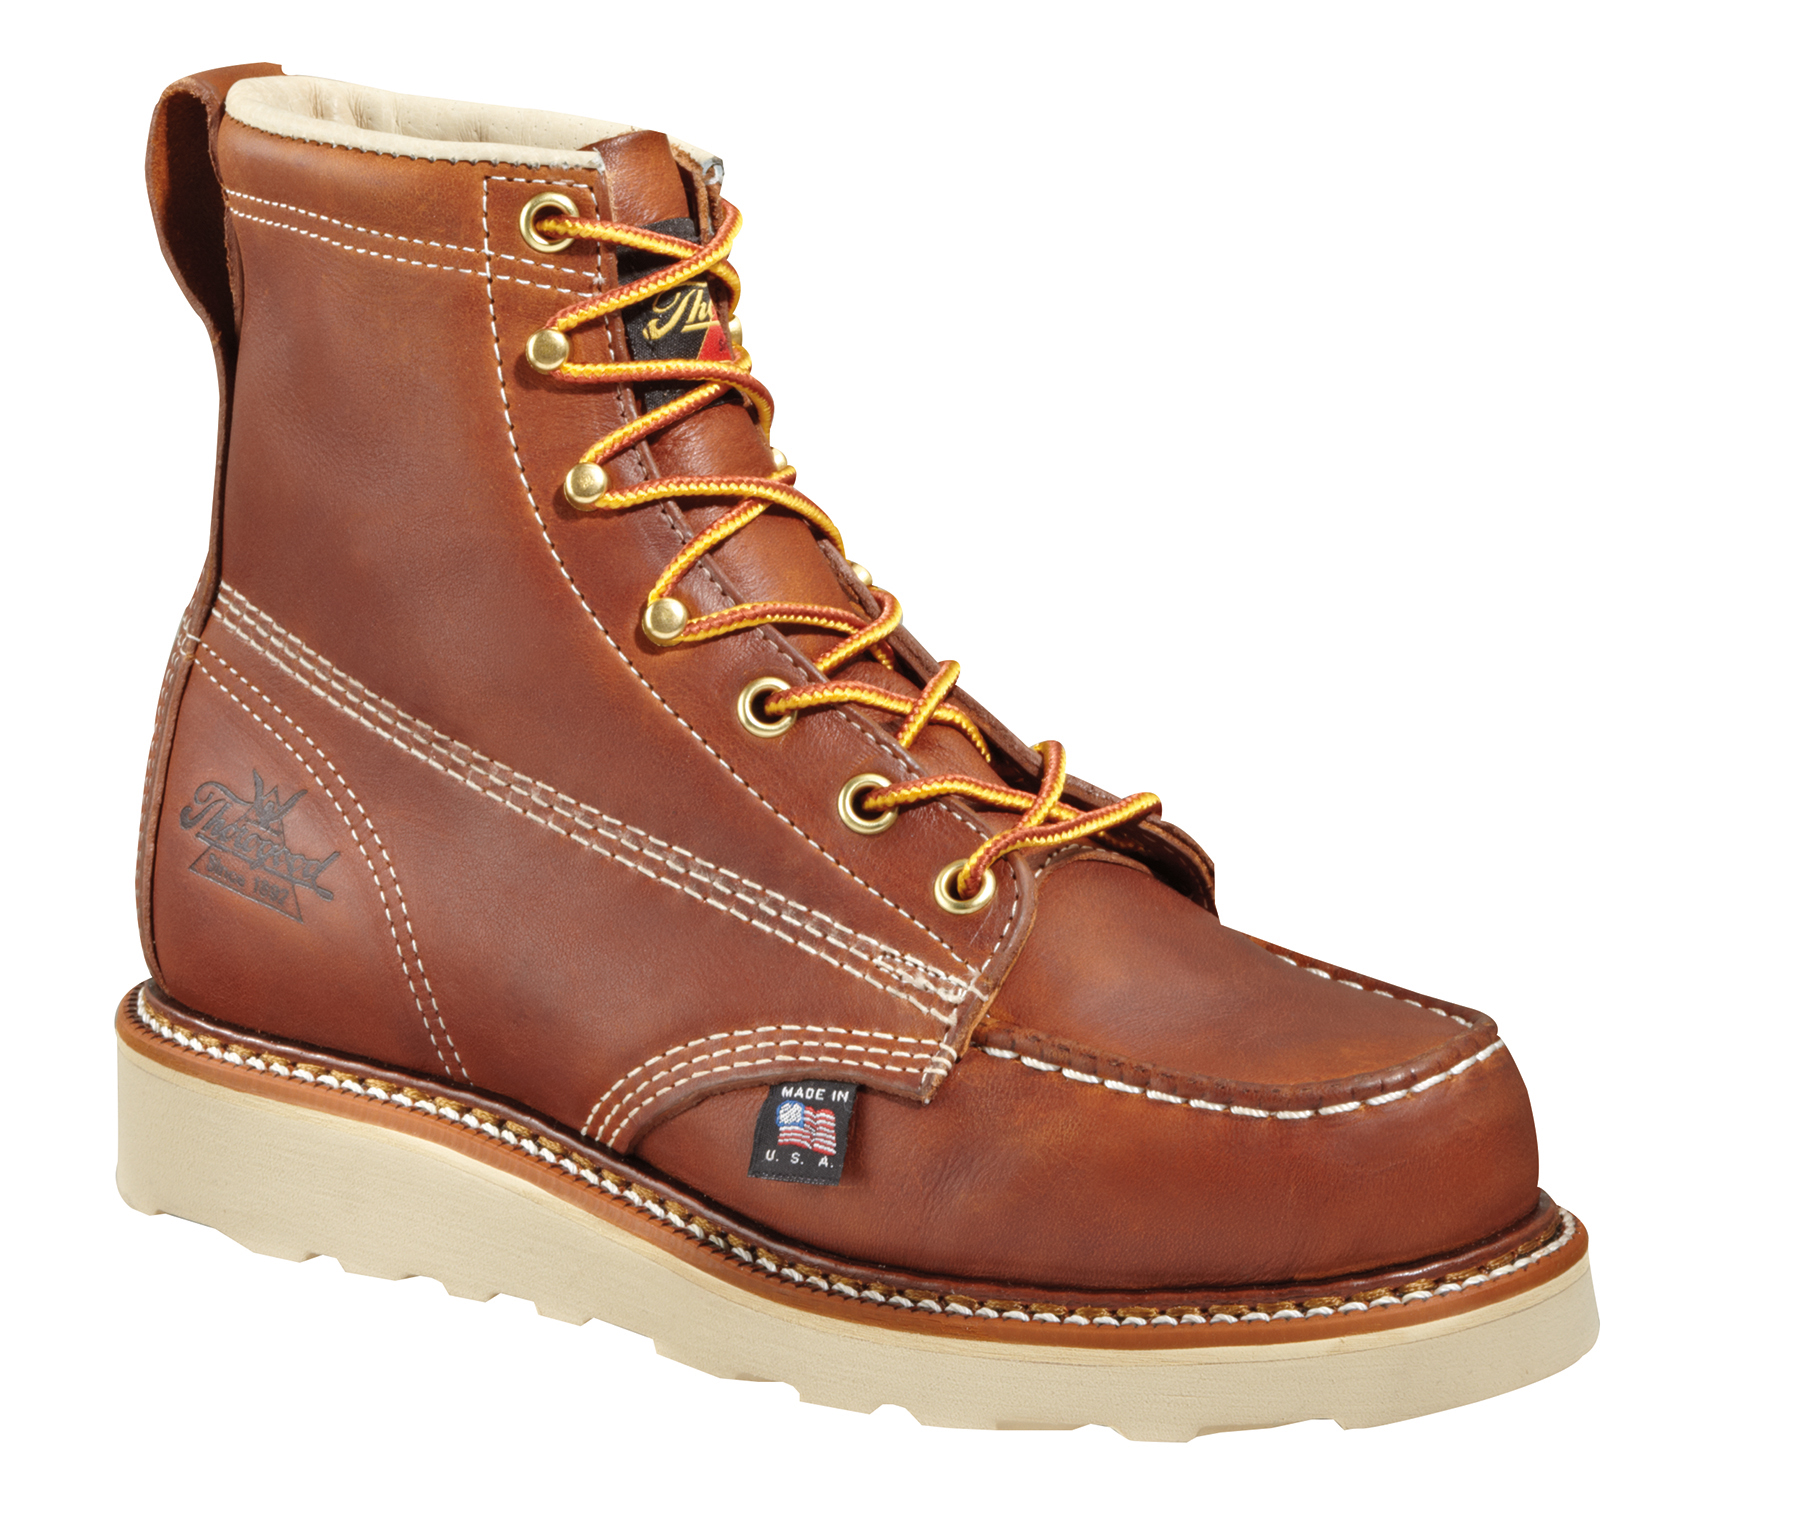 thorogood womens moc toe brown leather work boots eh wedge